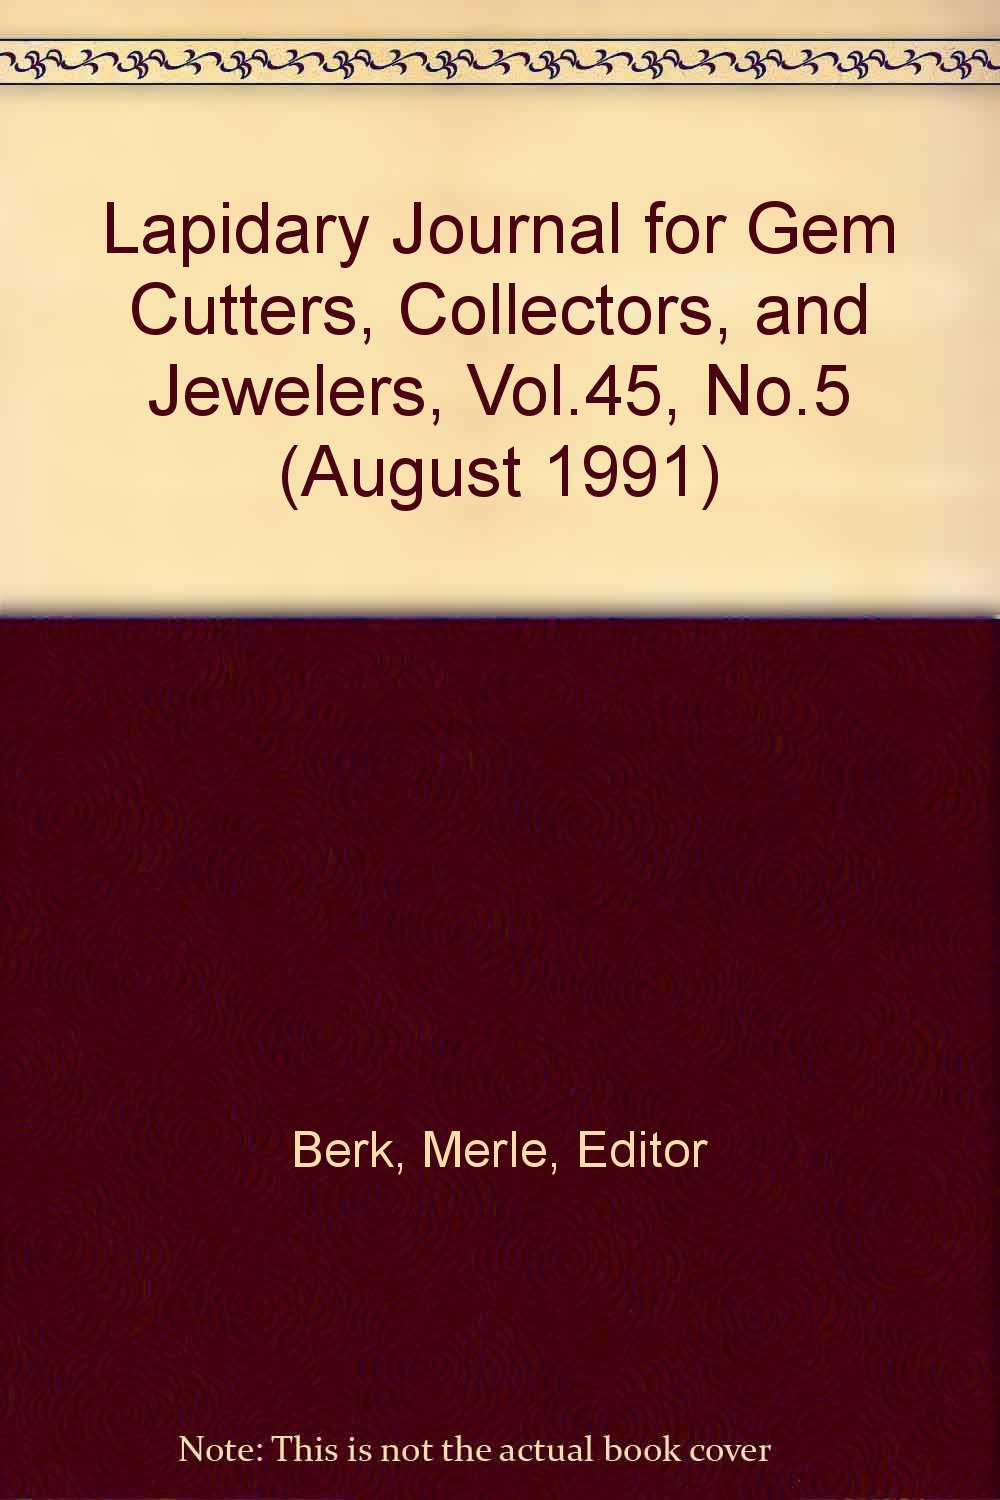 Lapidary Journal for Gem Cutters, Collectors, and Jewelers, Vol.45, No.5 (August 1991)